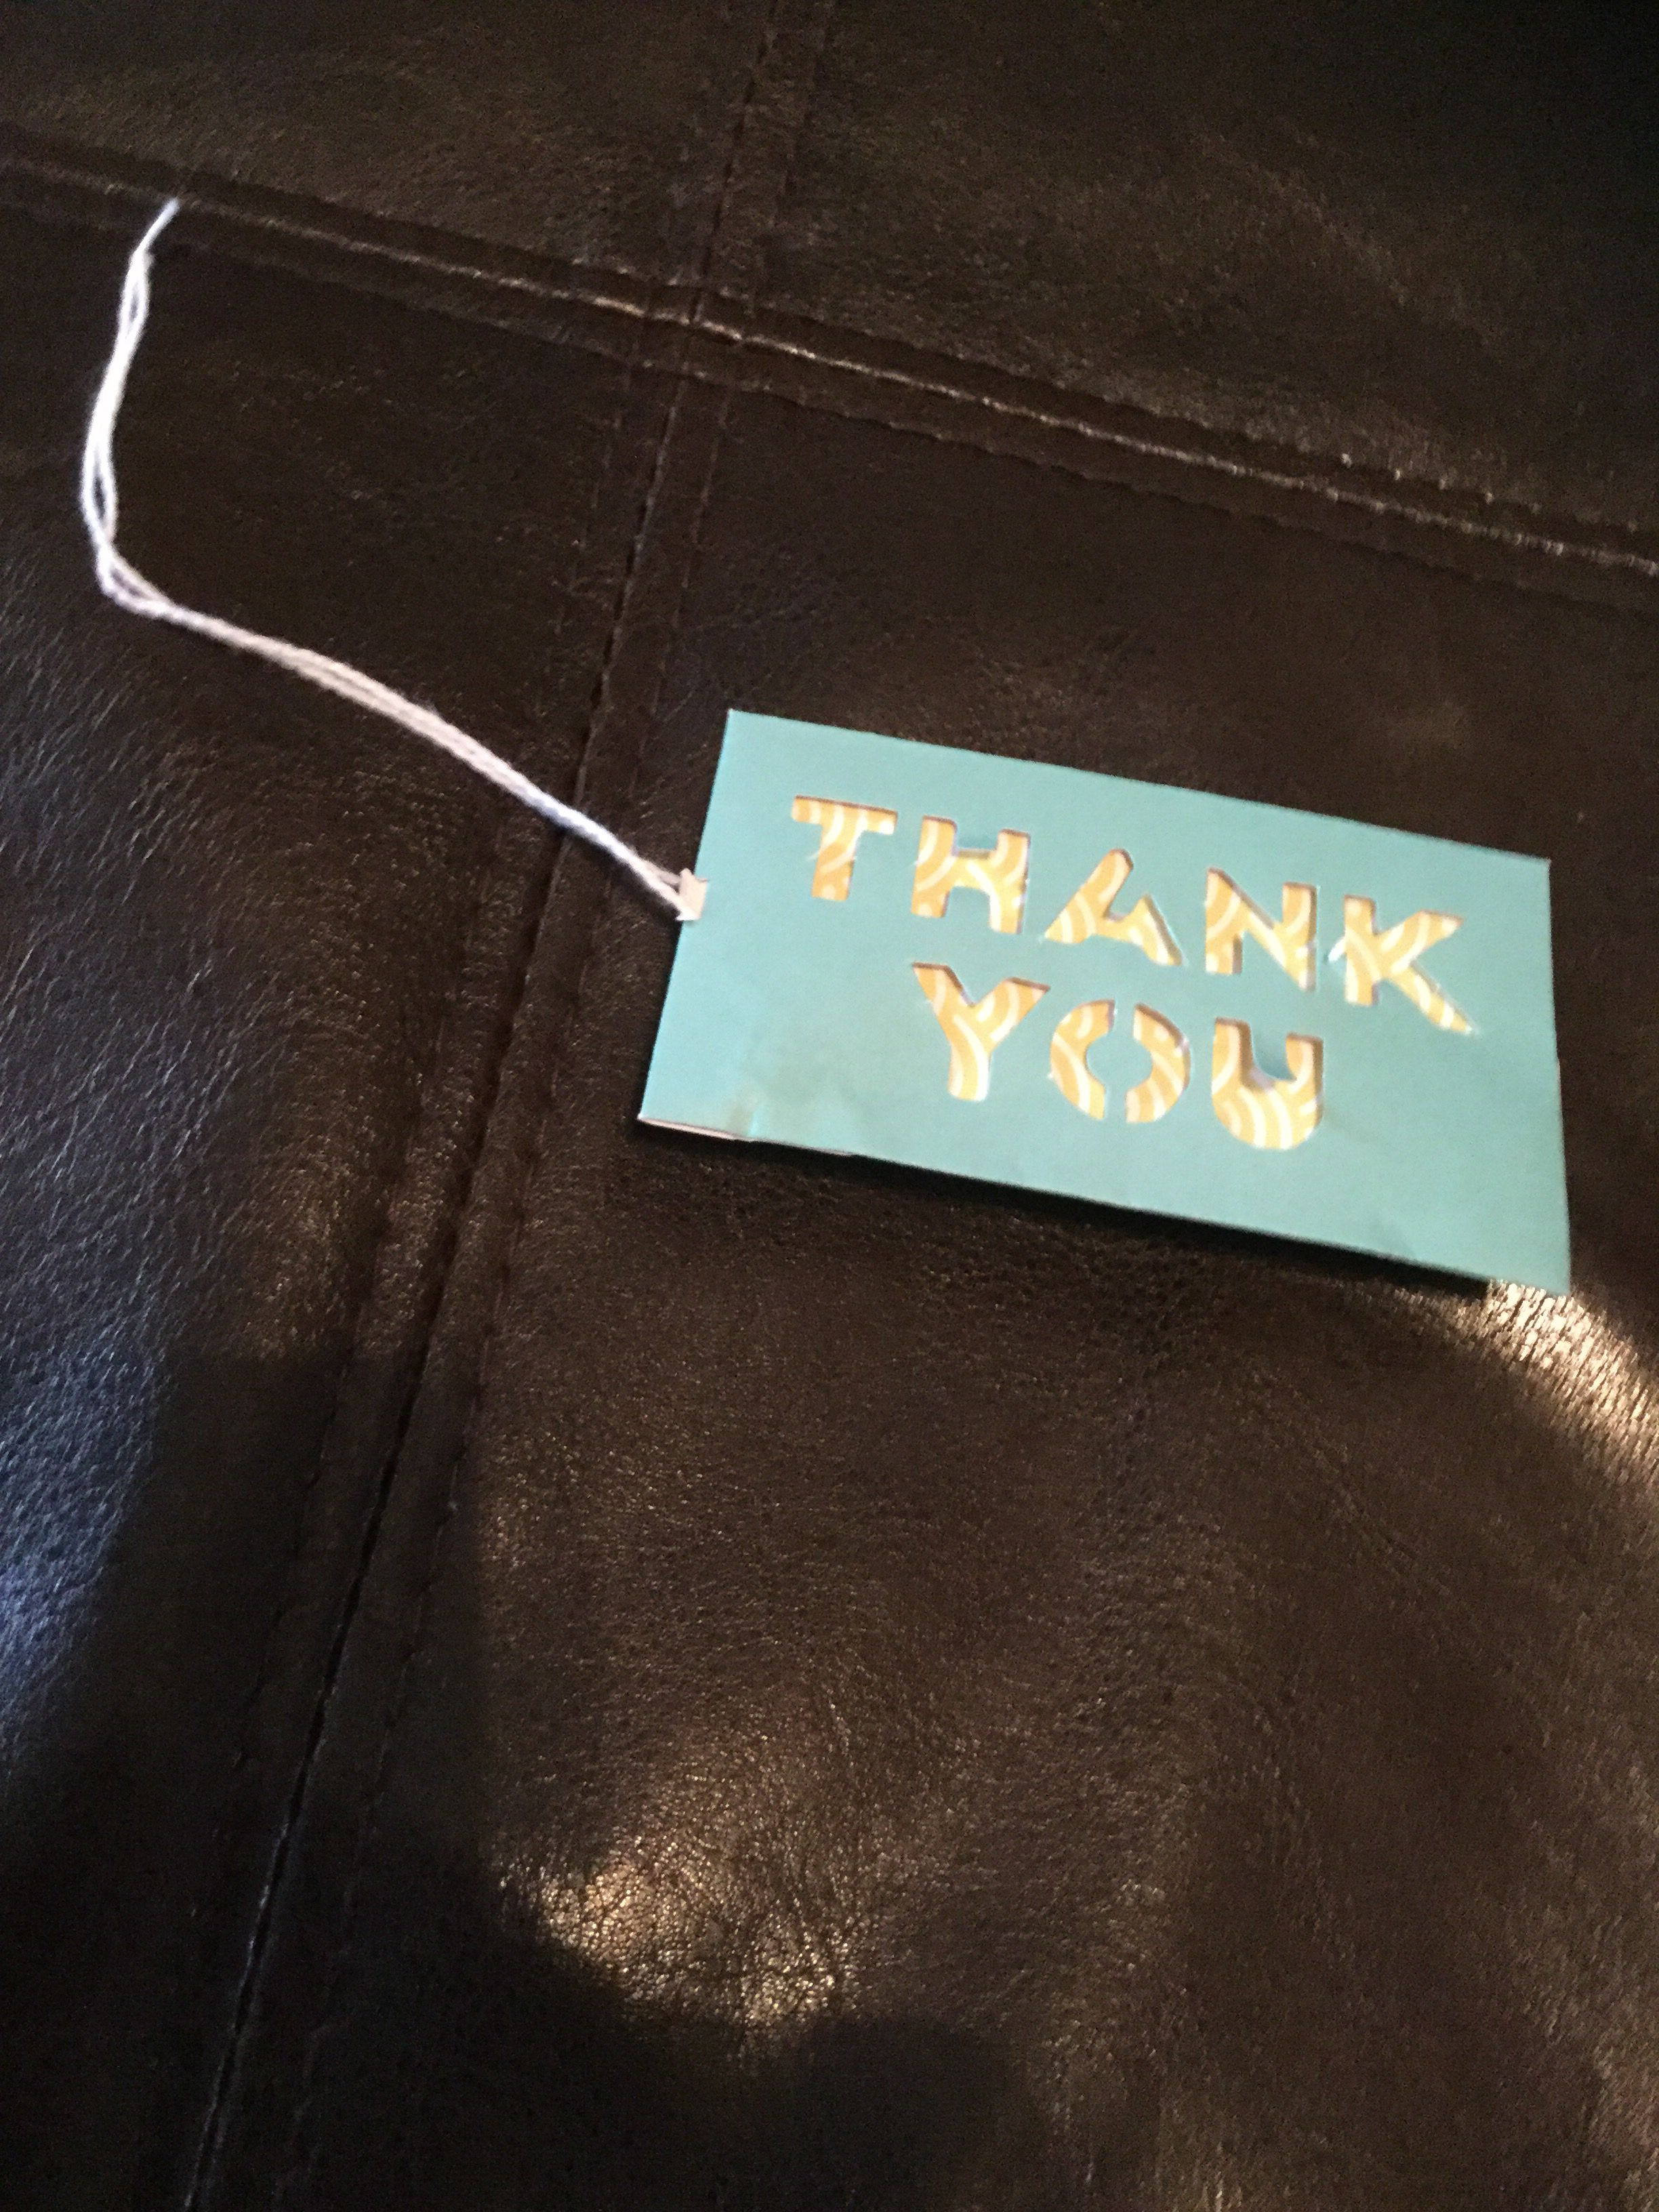 A perfect way to say thank you with a gift gifts gift